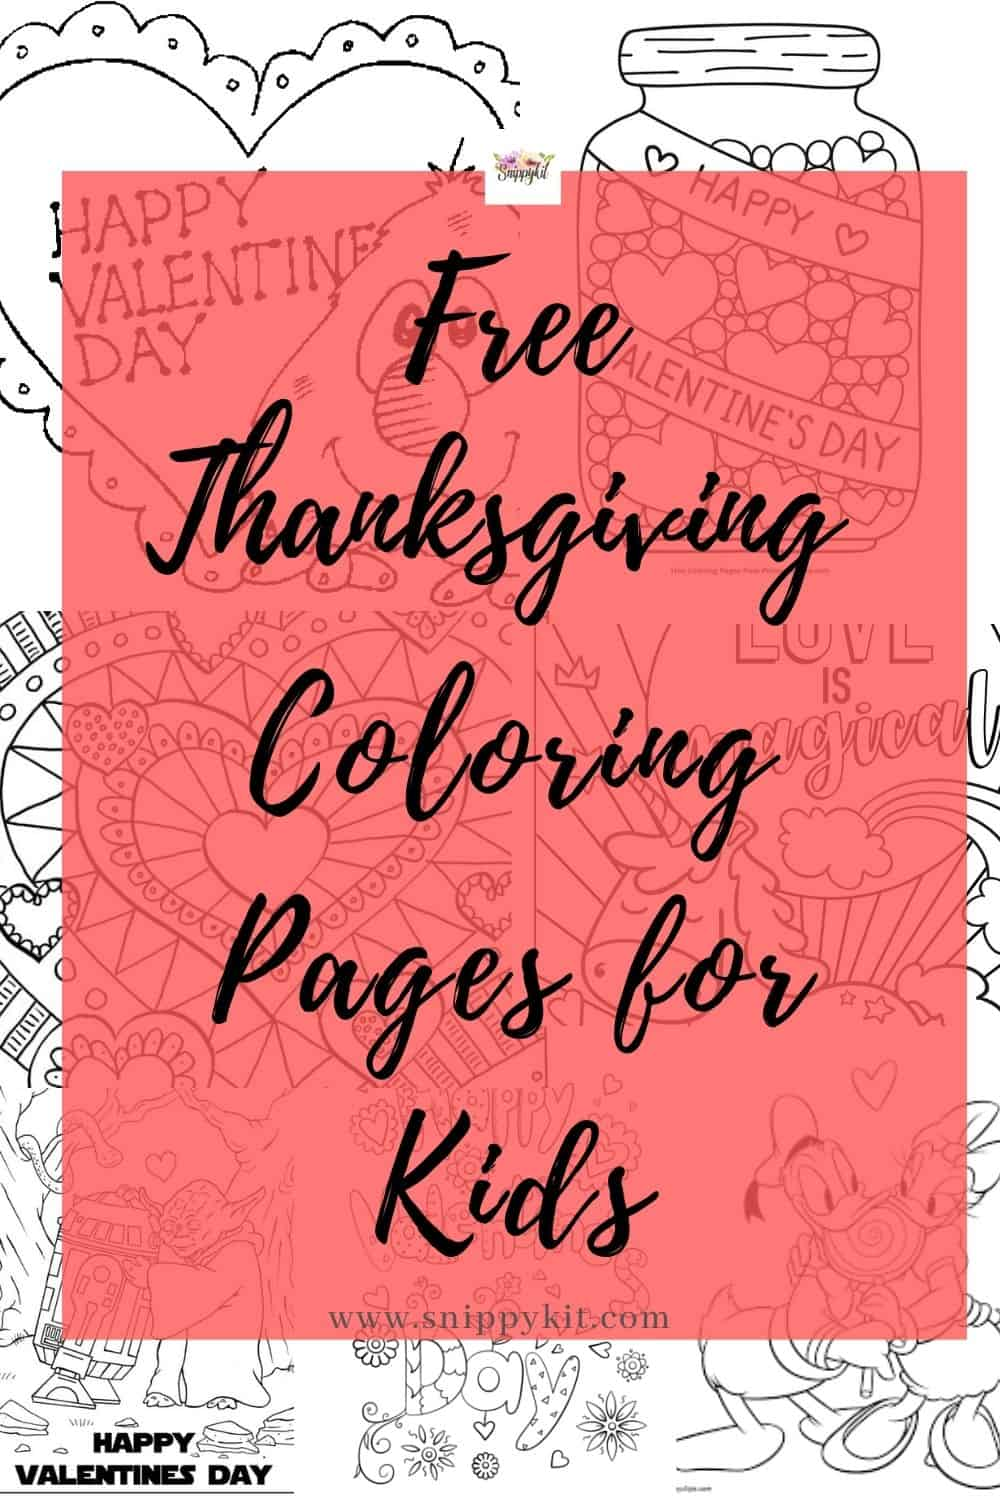 Valentine's Day coloring pages you can download for free, from sweet pictures for preschoolers to intricate doodles for adults to color in.